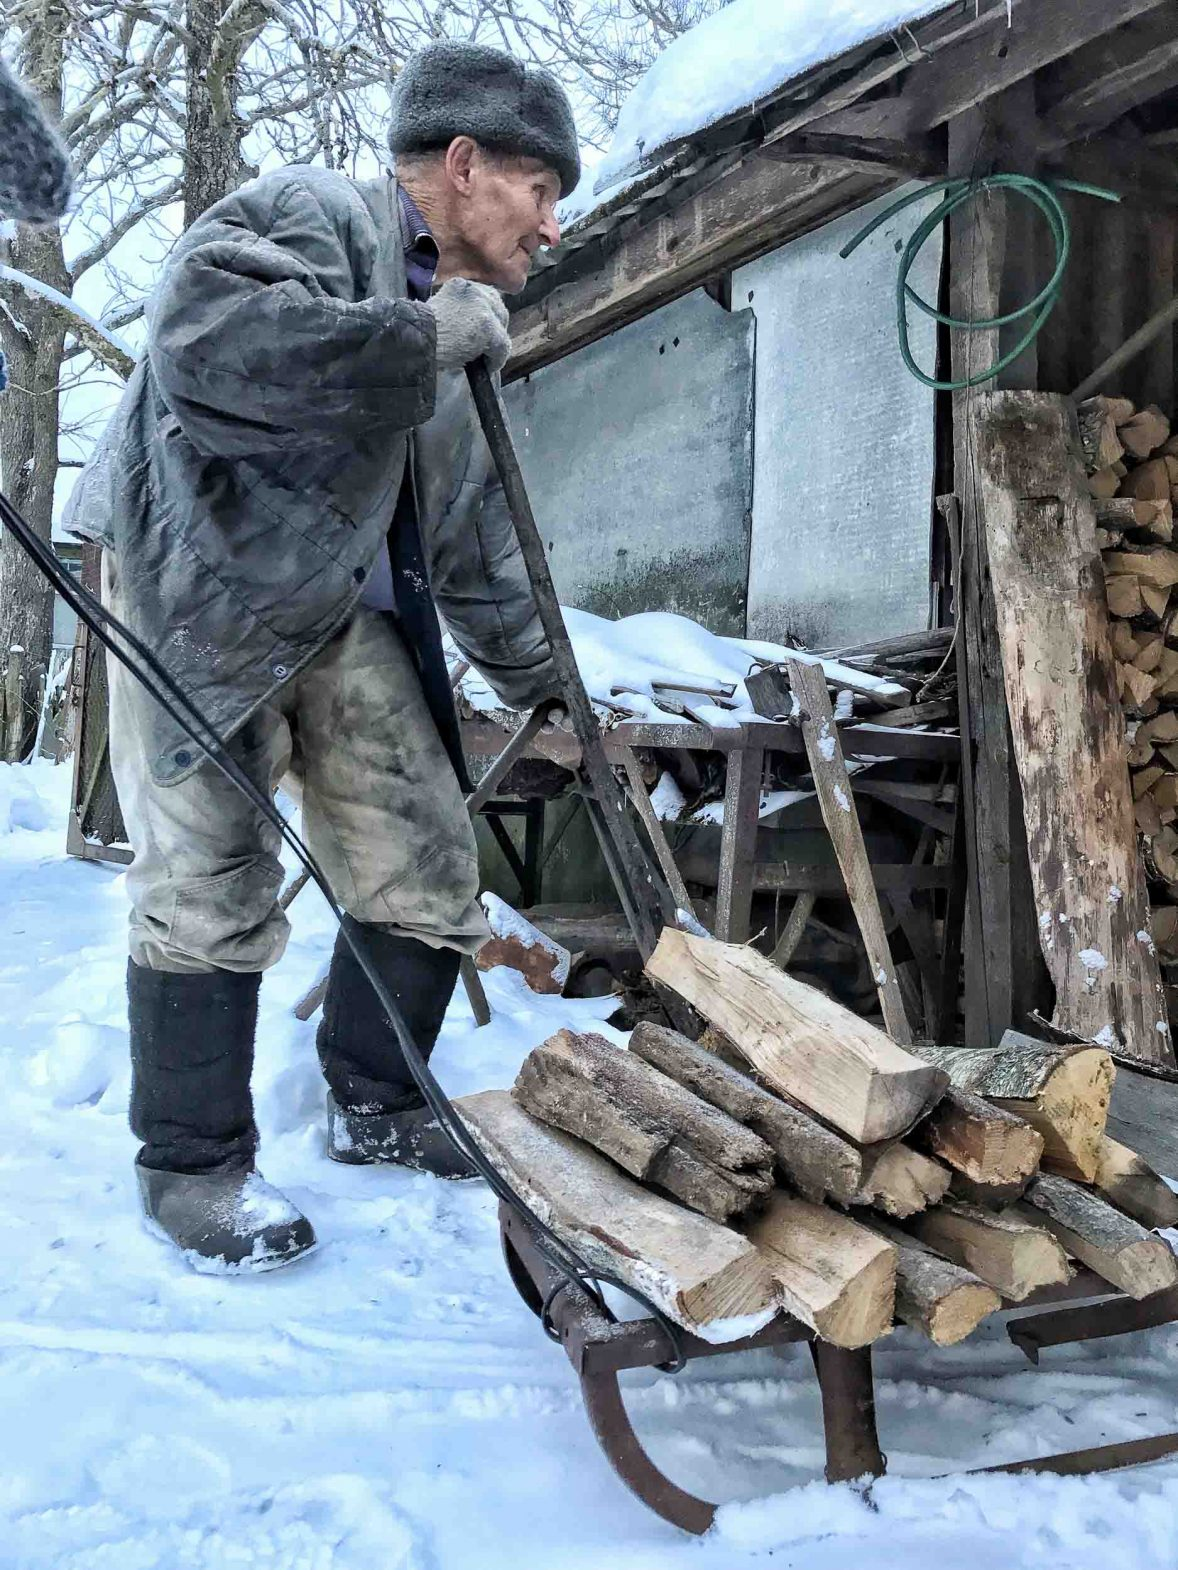 Ivan who lives in the Exclusion Zone collects wood by his home.